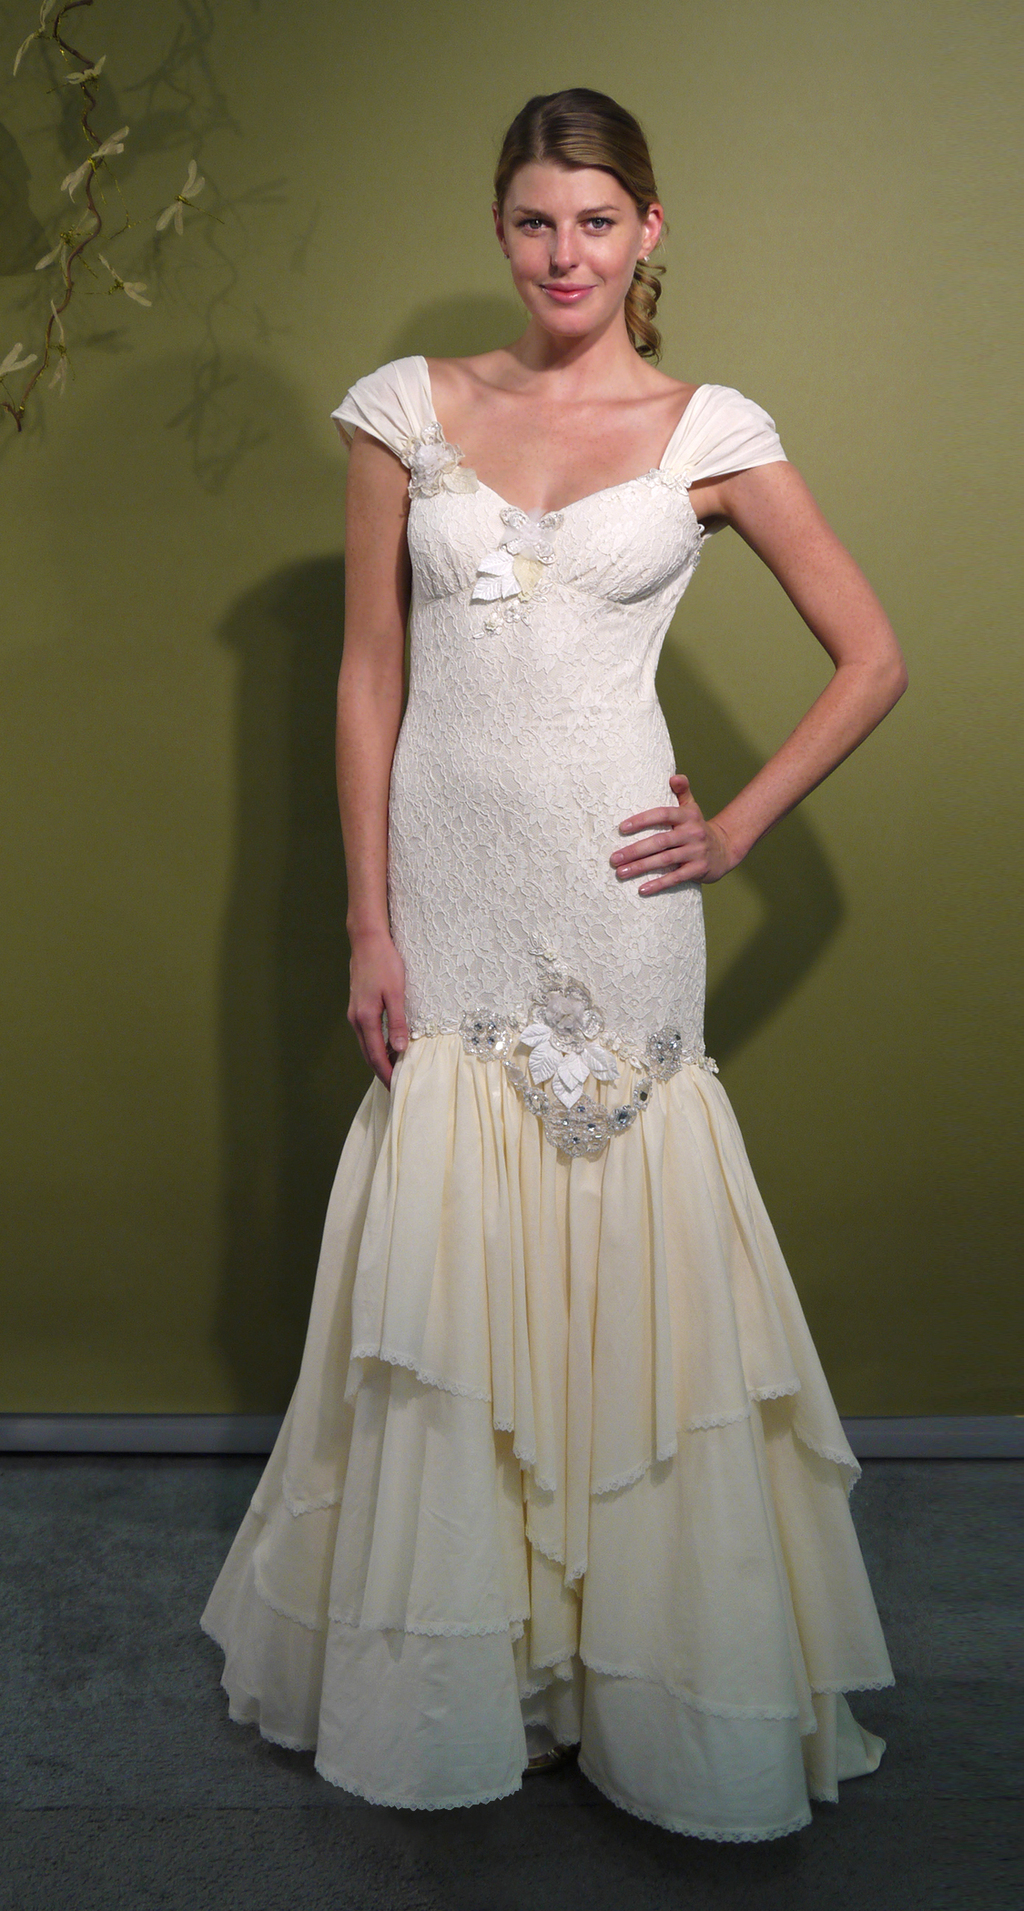 Fall-2011-wedding-dress-emmaline-bridal-gown-claire-pettibone-cap-sleeves-large.full